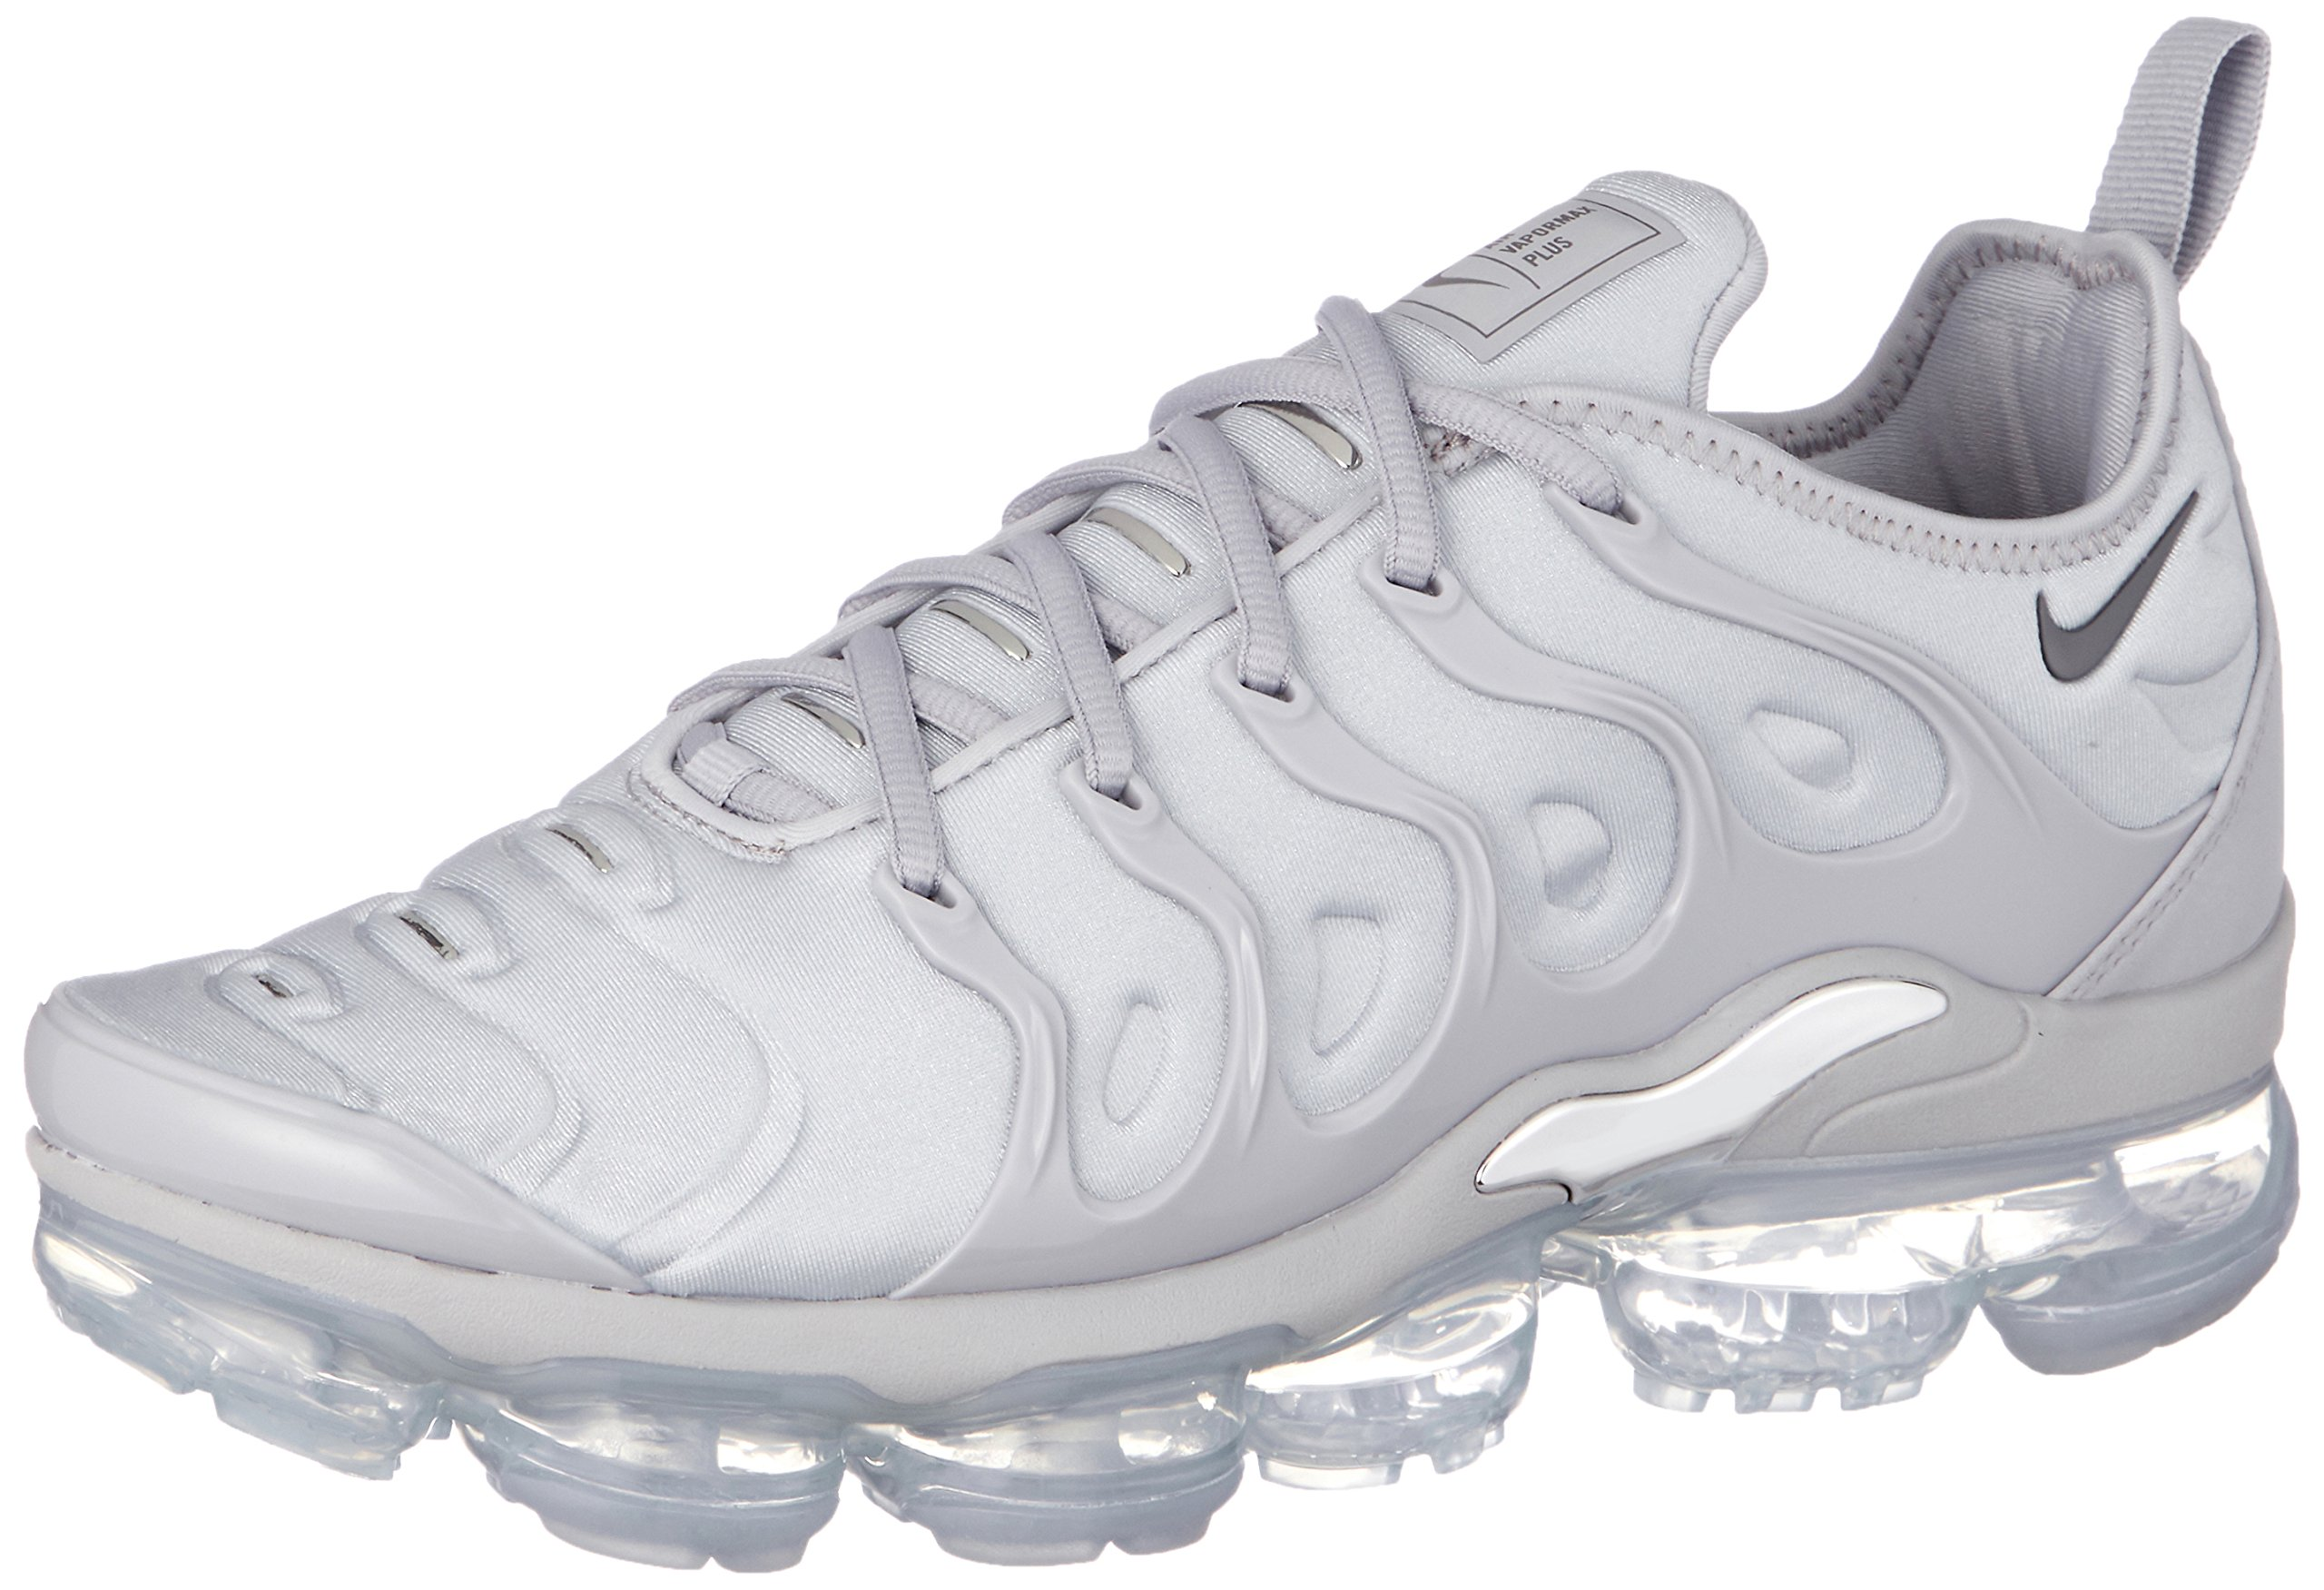 9ae9aa4ad97 Galleon - Nike Men s Air Vapormax Plus